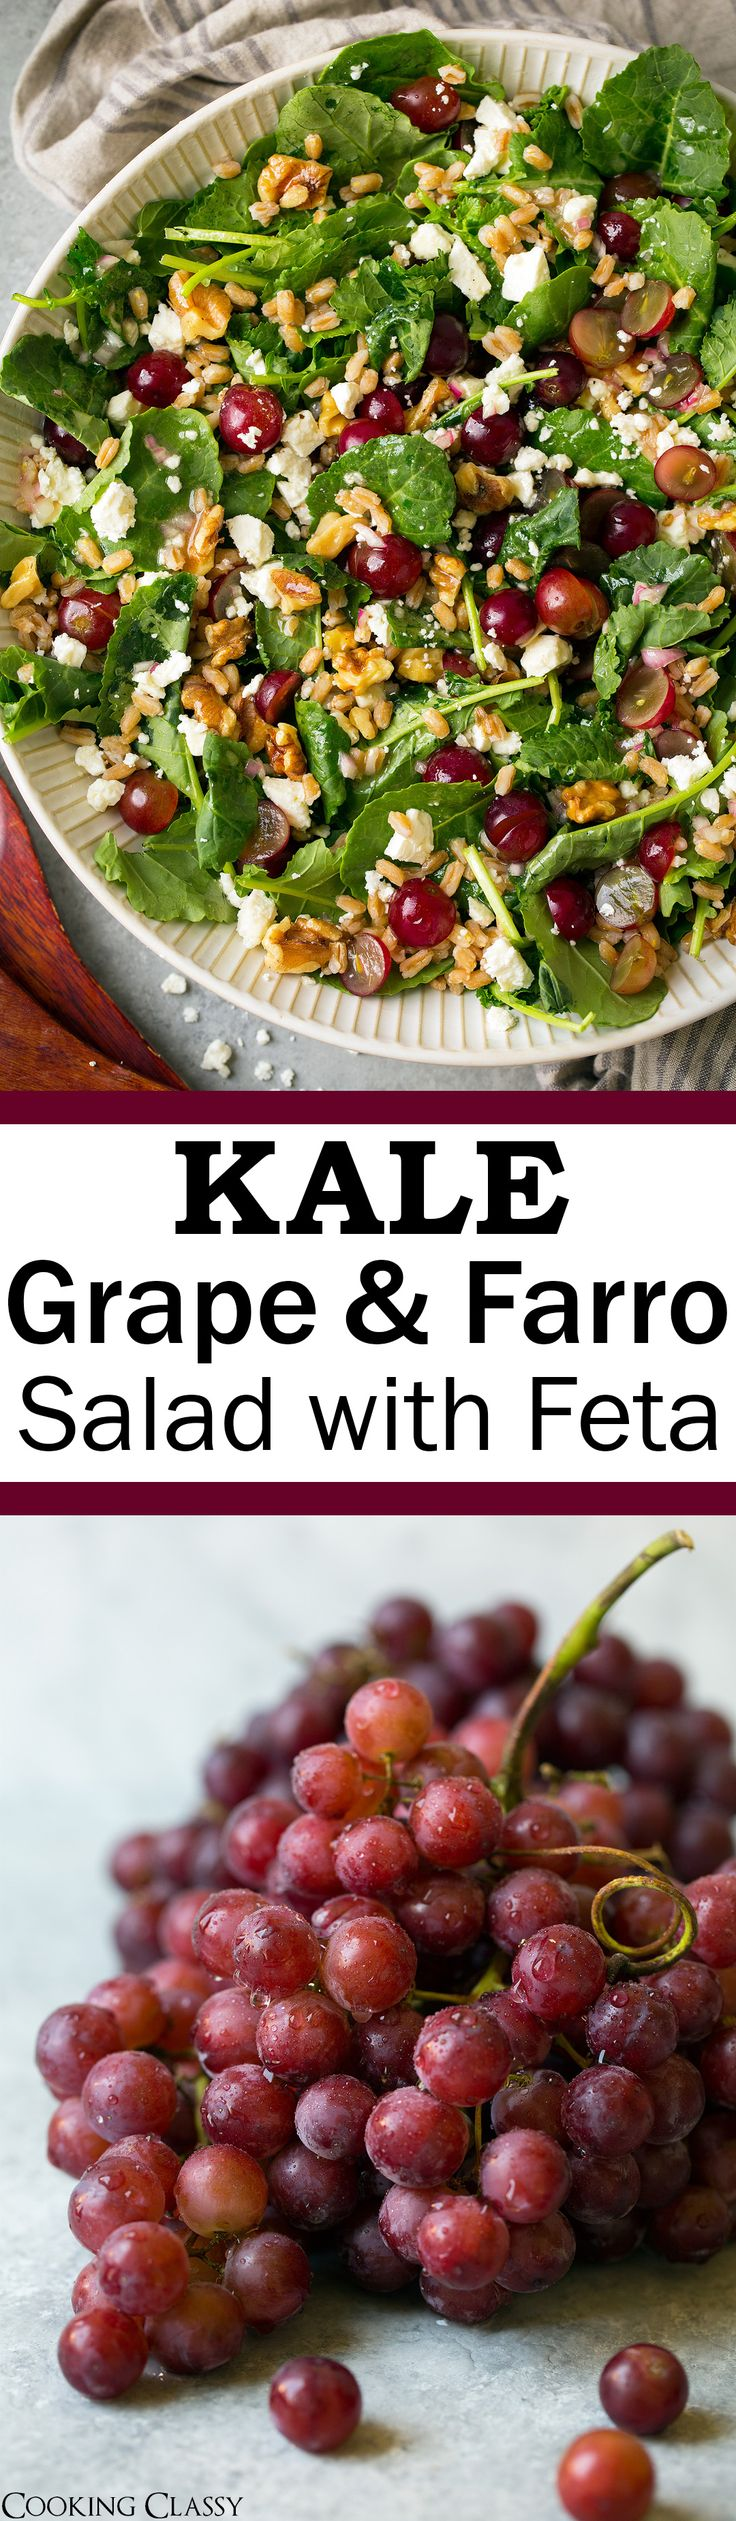 Kale Grape and Farro Salad with Feta and White Wine Vinaigrette - Cooking Classy